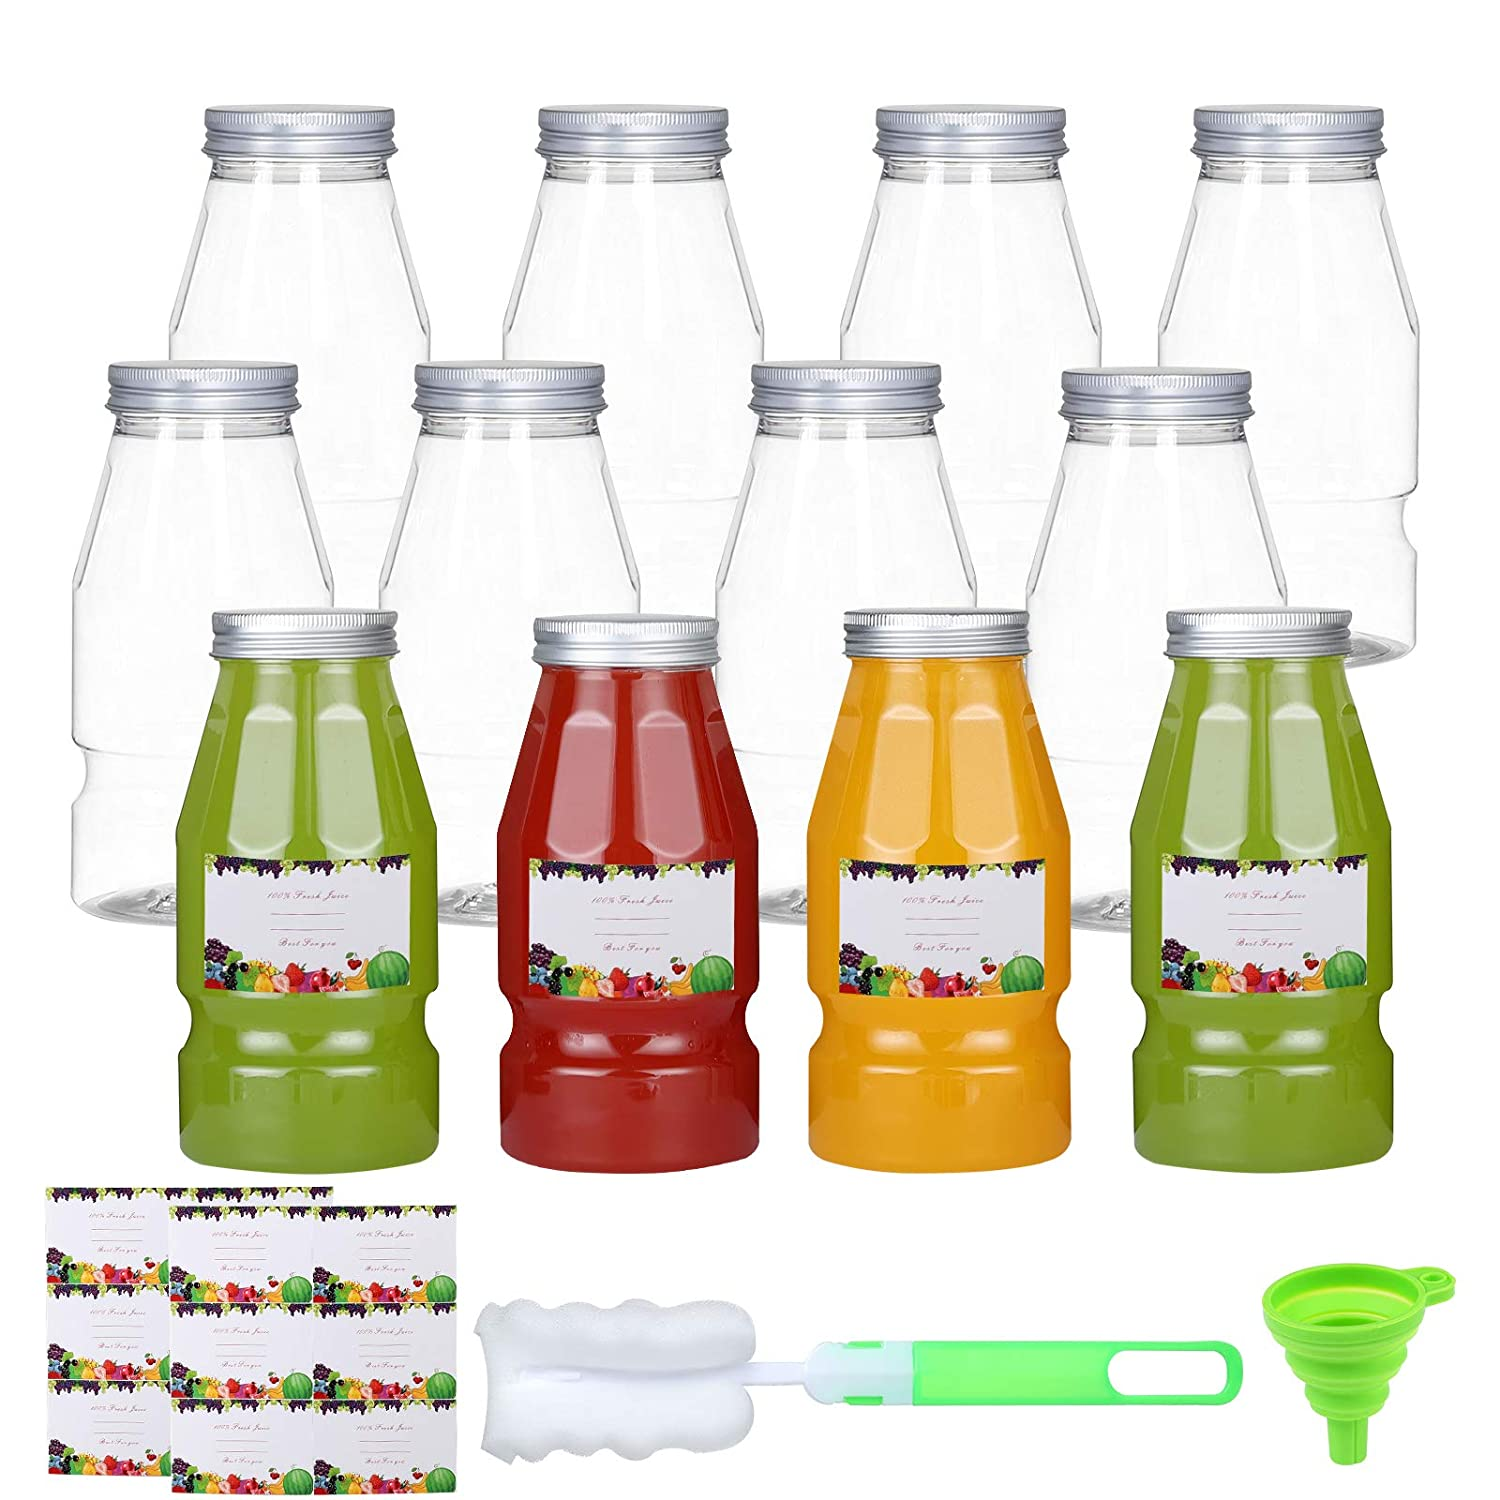 Mike pups Plastic Juice Bottles 16 Oz Disposable Clear PET Empty Bottles with Airtight Aluminum Caps Reusable Take out Containers with Lids for Milk Smoothie Drinks and Beverages, 12 Pack(Aluminum cap)